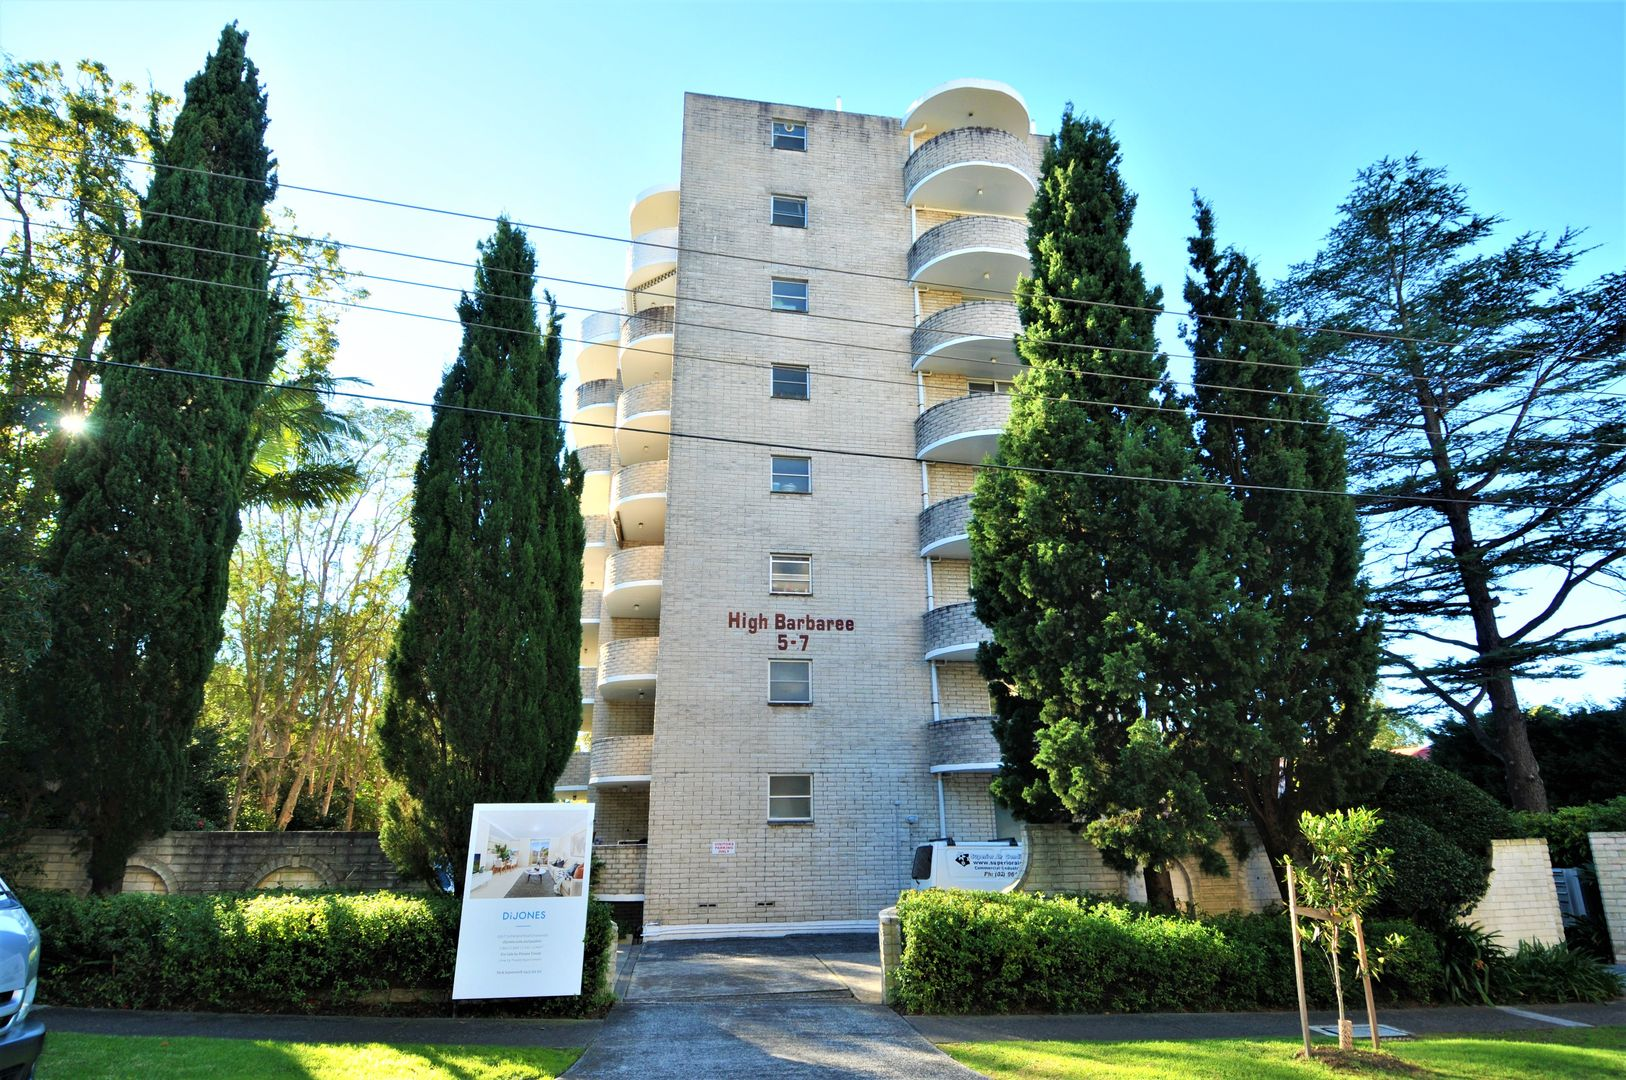 2 bedrooms Apartment / Unit / Flat in 10/5-7 Sutherland Road CHATSWOOD NSW, 2067